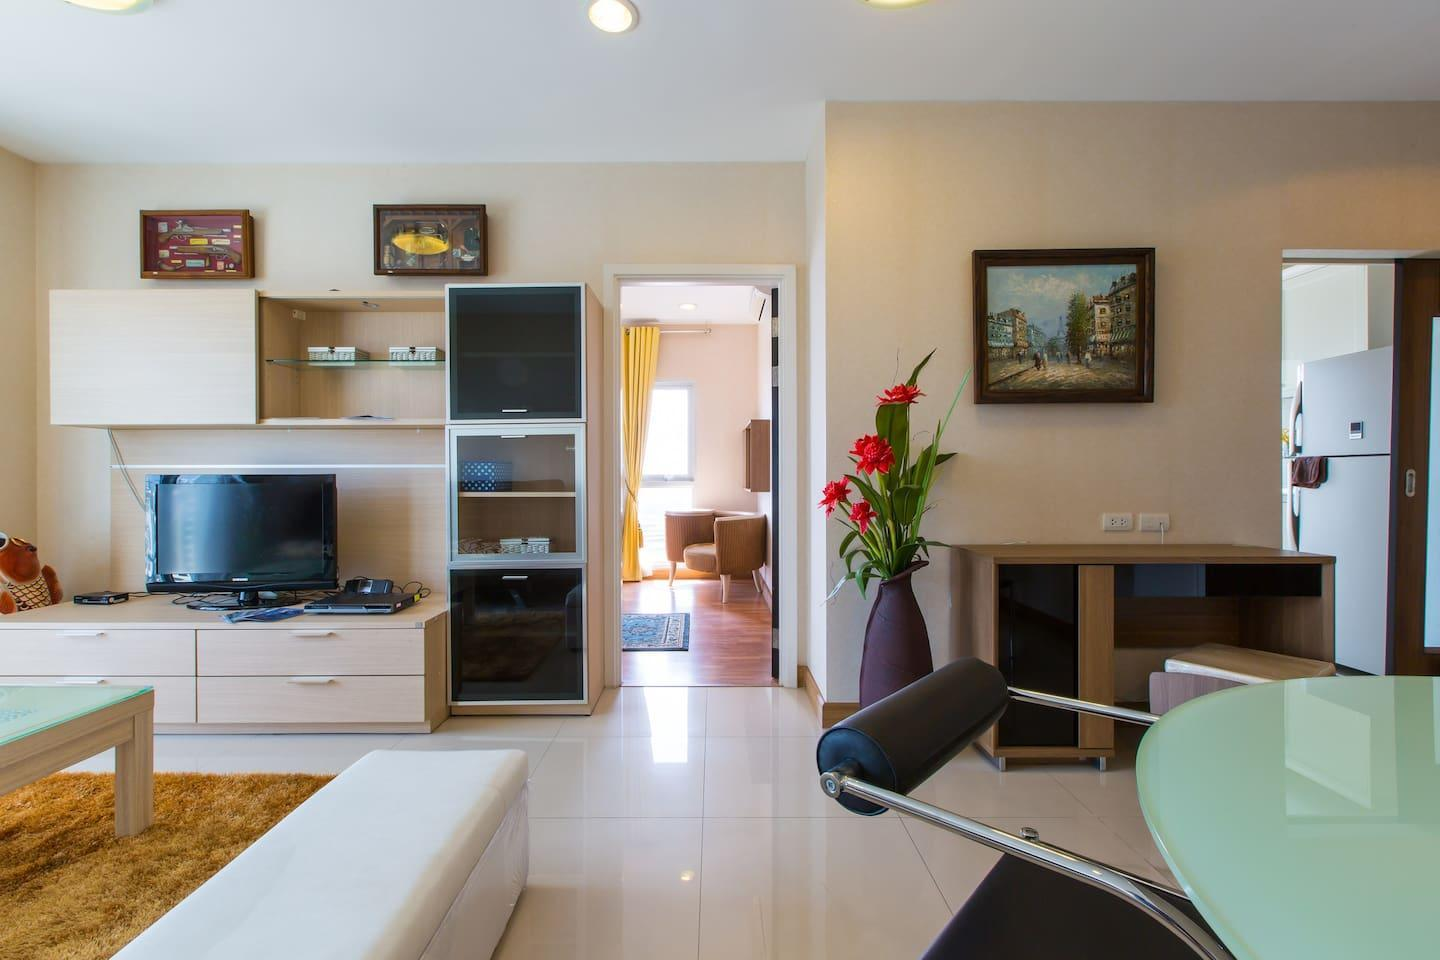 RiverfrontSuite 3 60sqm+Netflix+WIFI@Room And Pool